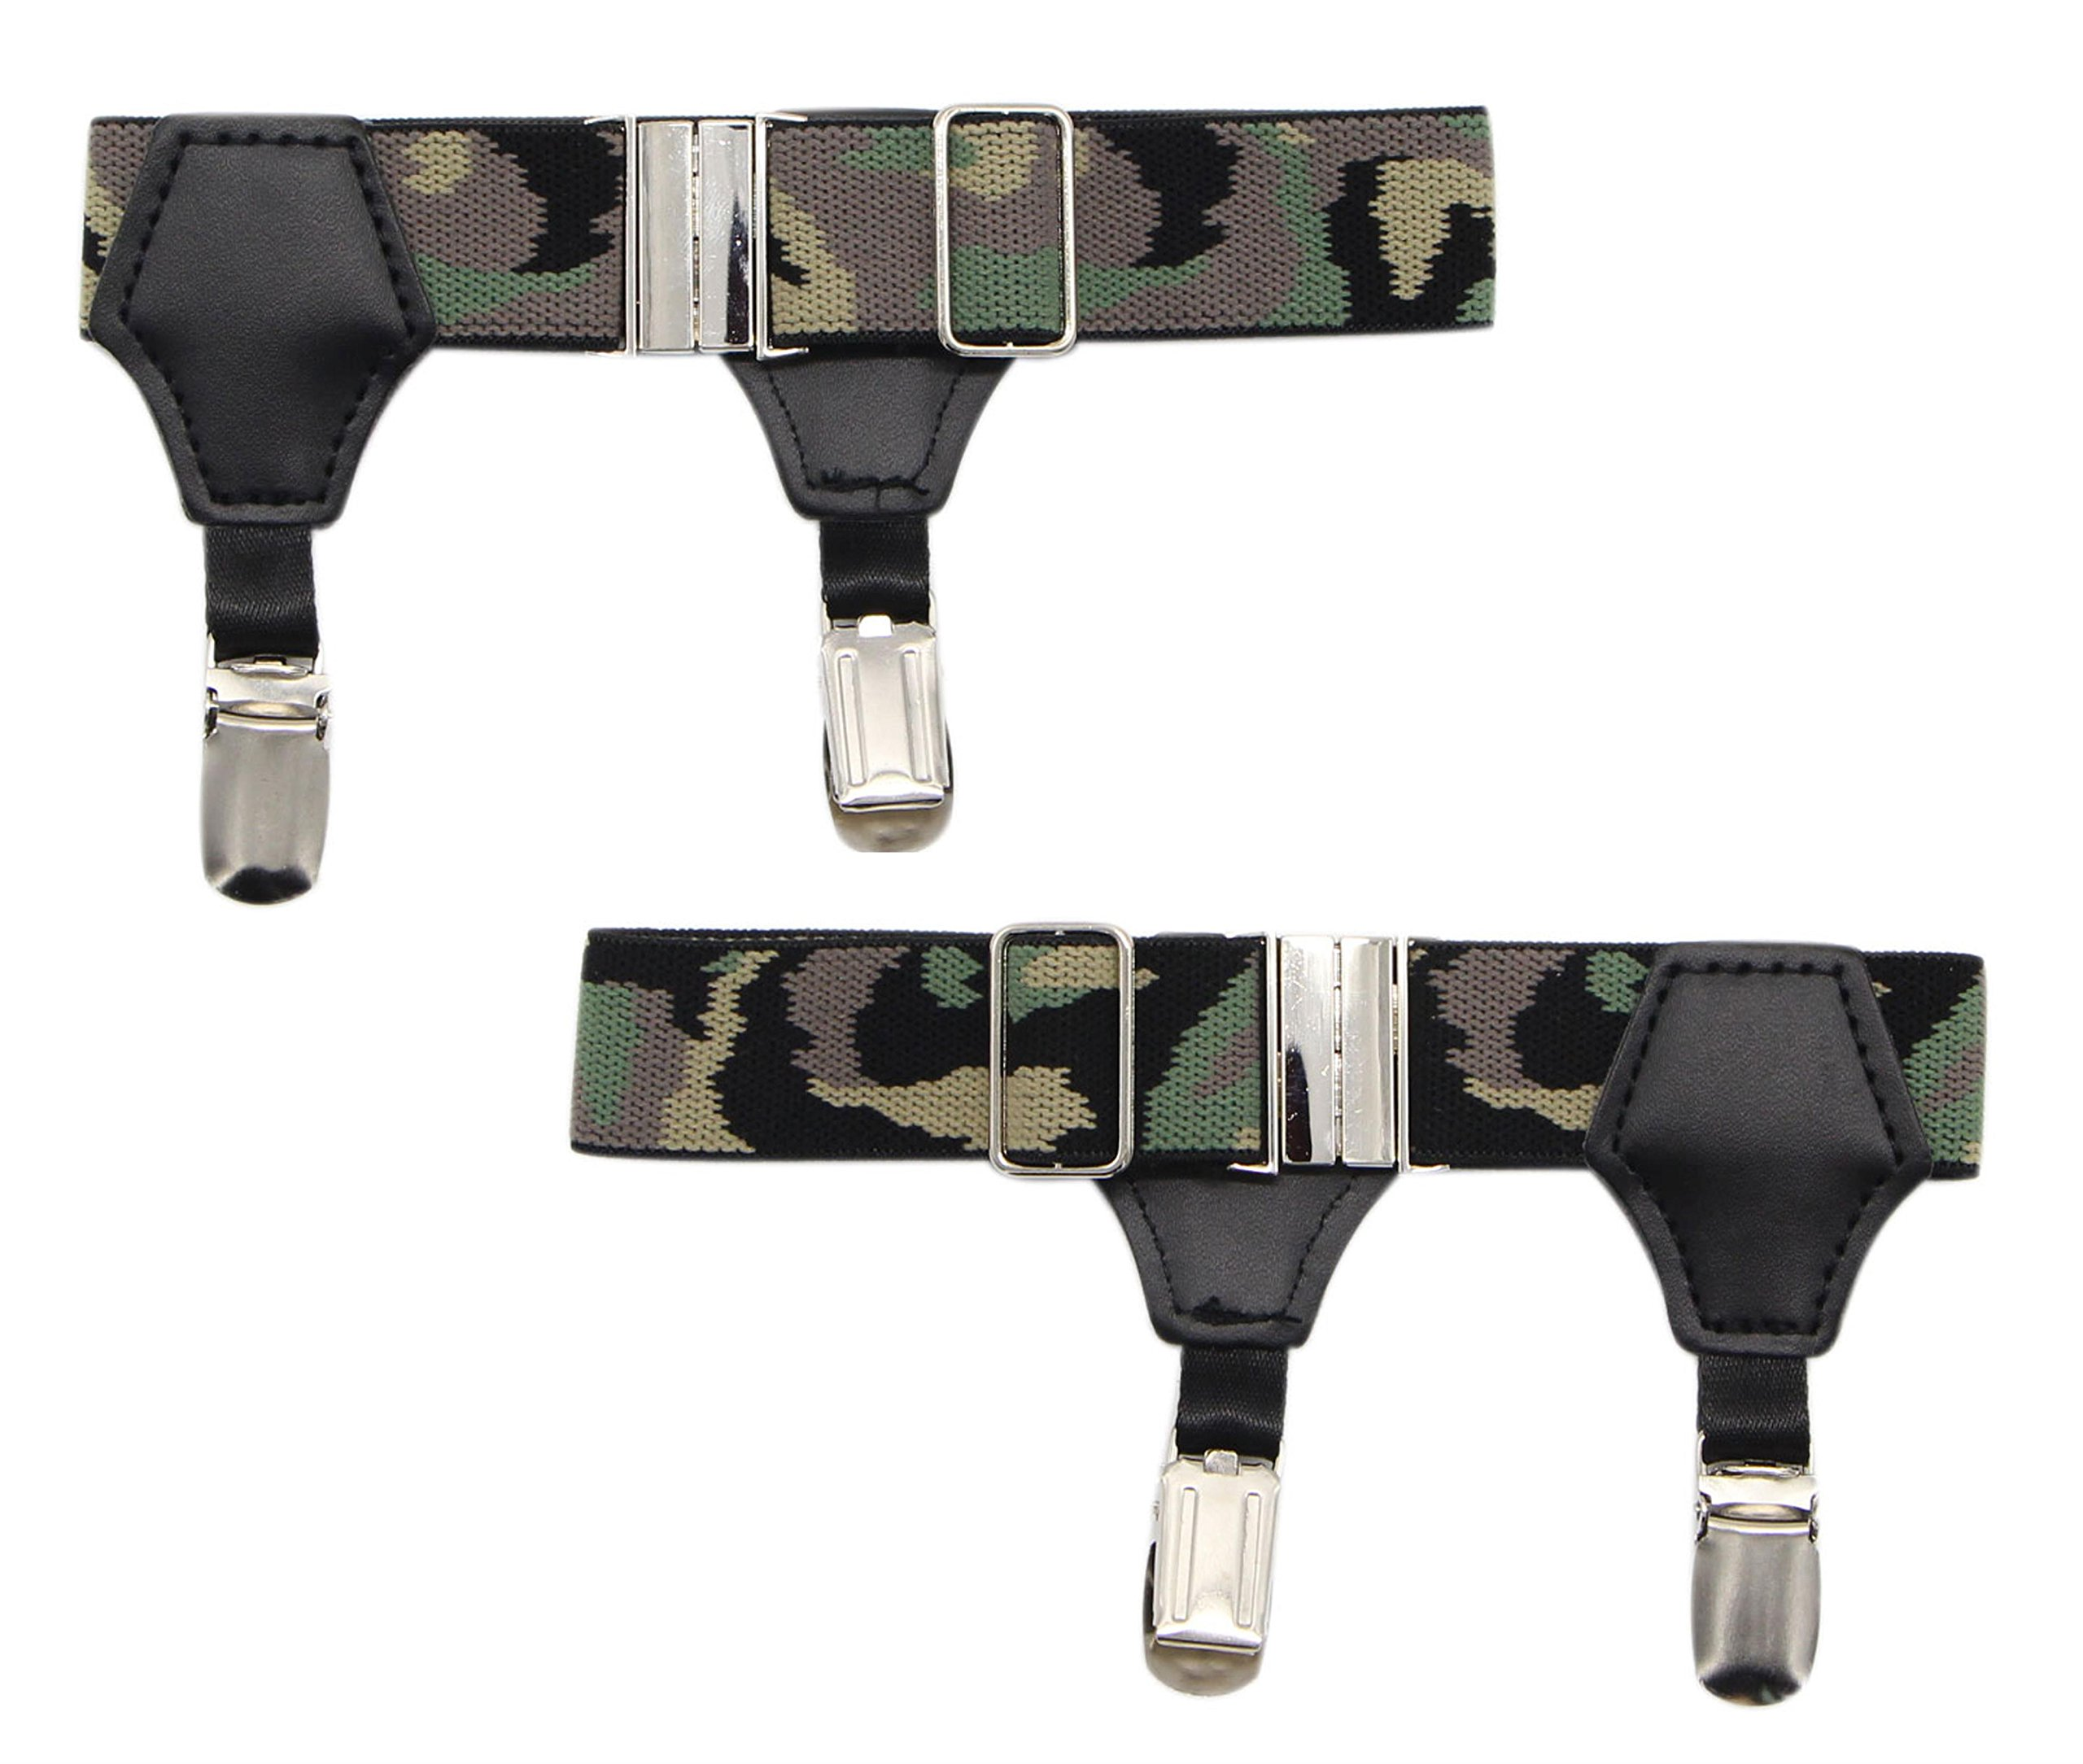 JAIFEI High - End Sock Garters - Premium 1-Pair Double Sturdy Clip Sock Suspenders For Cotton & Silk Socks- Adjustable Men's Sock Holders For Neat- Great Gift Idea (Camo)